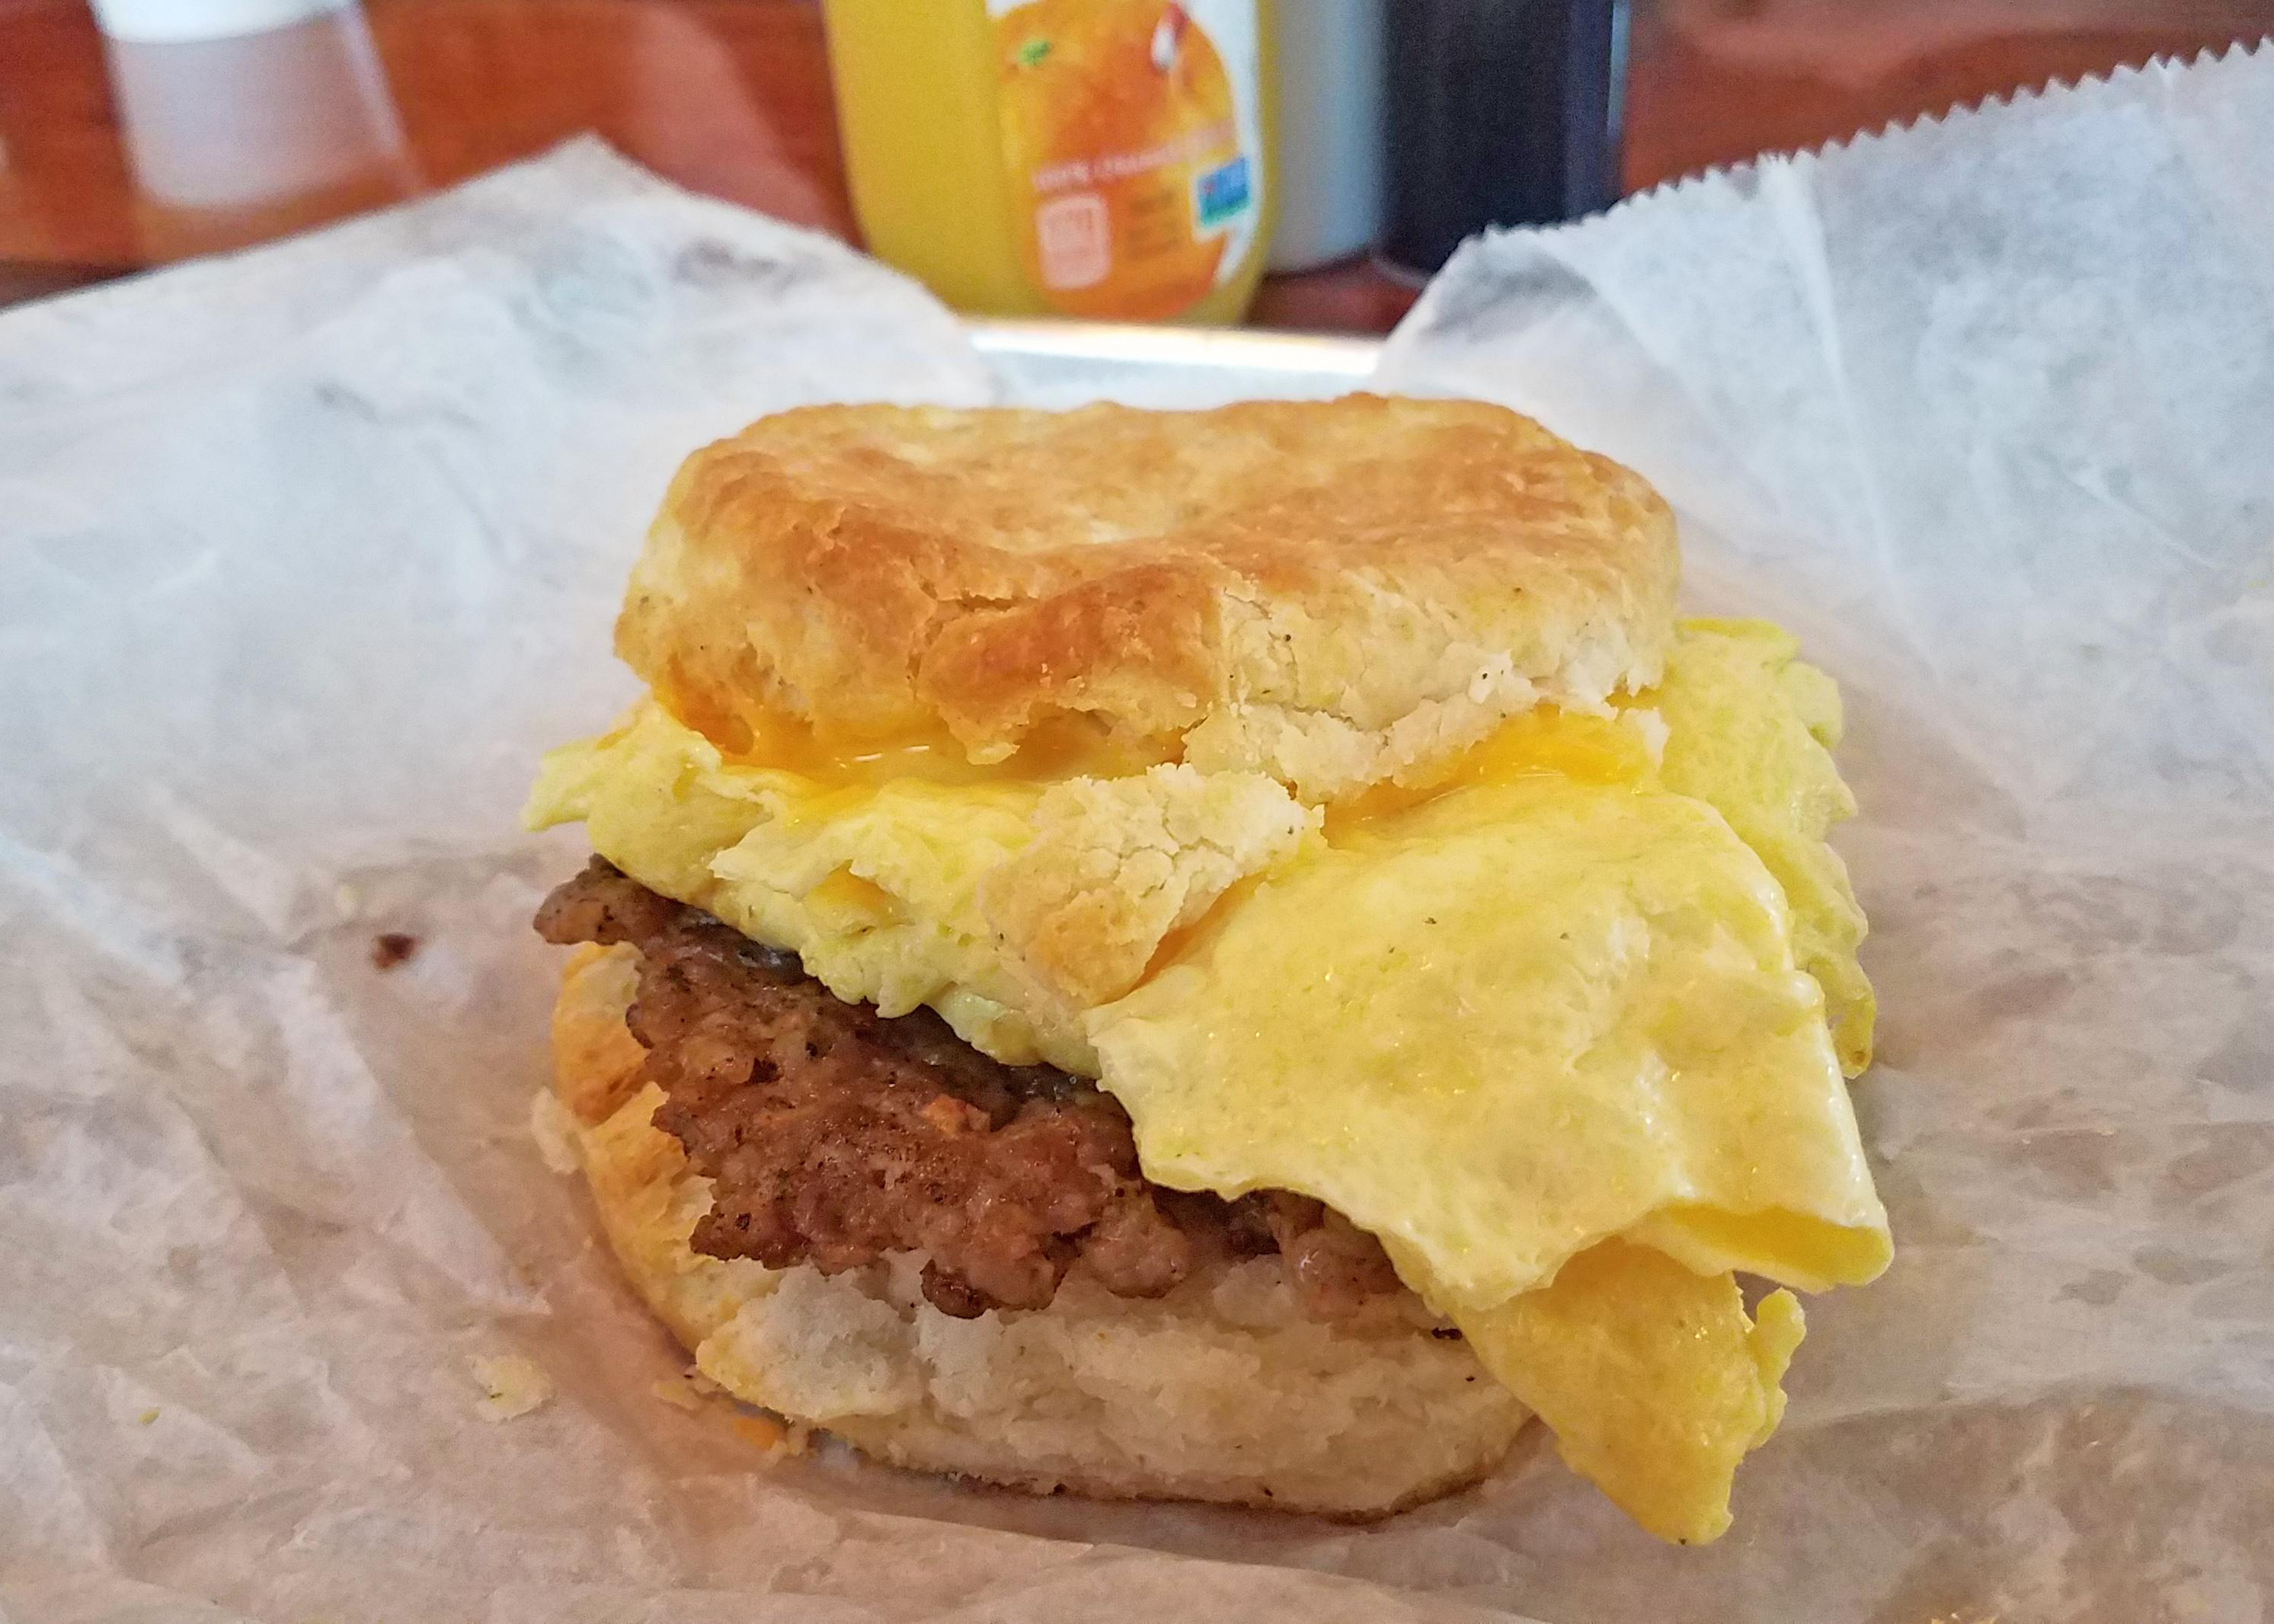 Some of the best biscuits you will ever taste can be found at Roanoke's Scratch Biscuit Co.(Image: Troy Petenbrink)